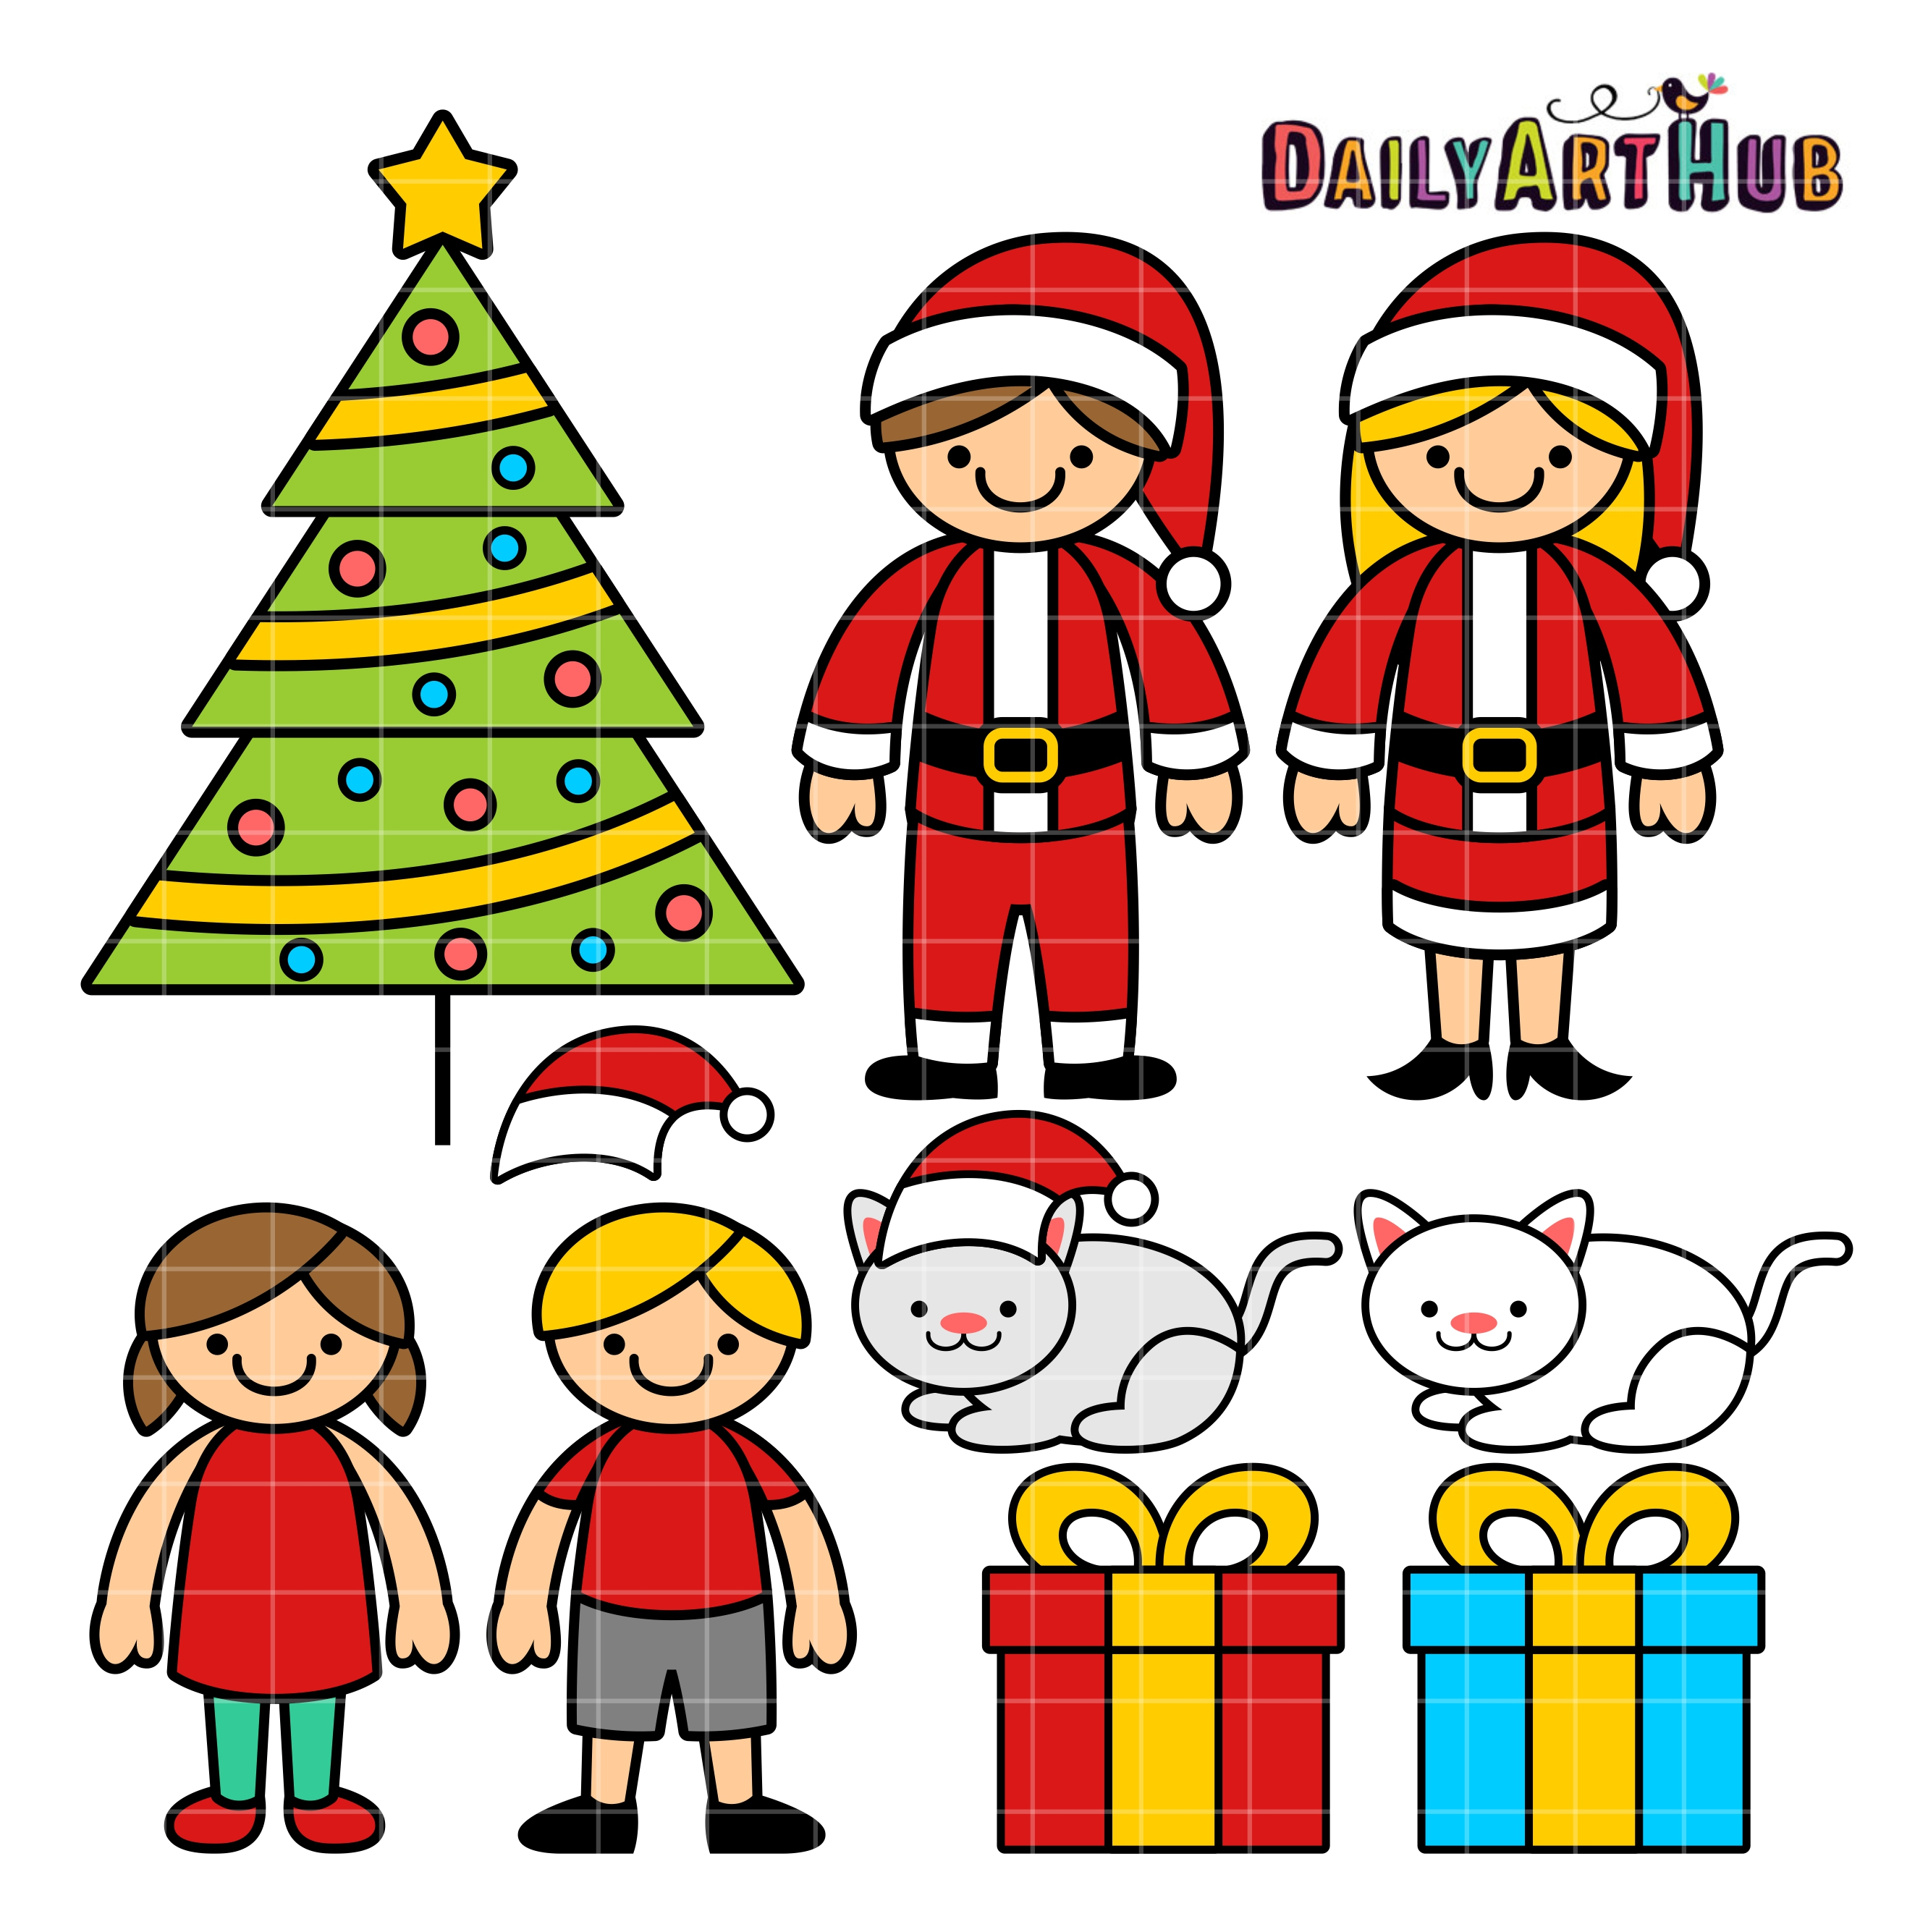 2664x2670 Christmas Family Clip Art Set Daily Art Hub